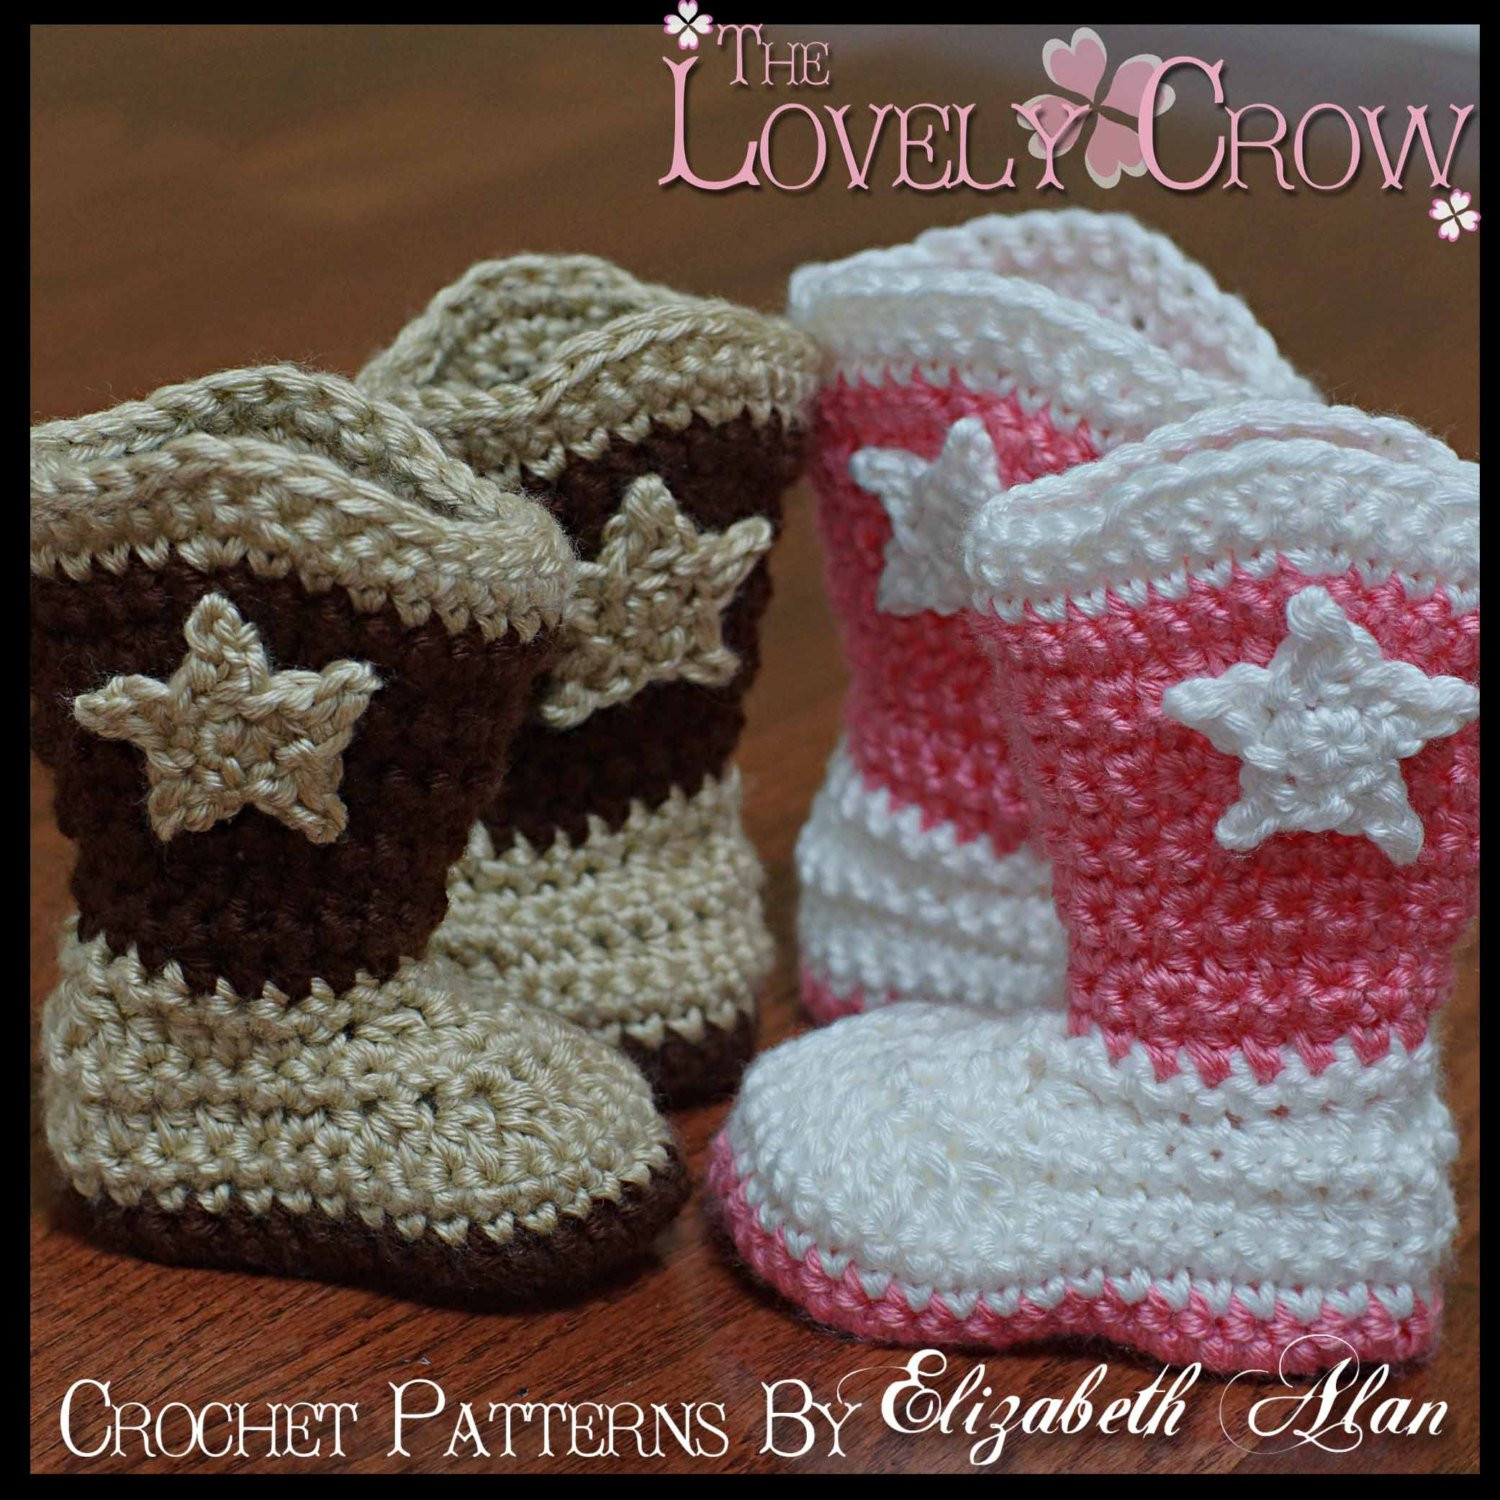 Crochet Cowboy Boots Unique toddler Cowboy Boots Crochet Pattern toddler Boot Scootn Boots Of Marvelous 49 Pictures Crochet Cowboy Boots